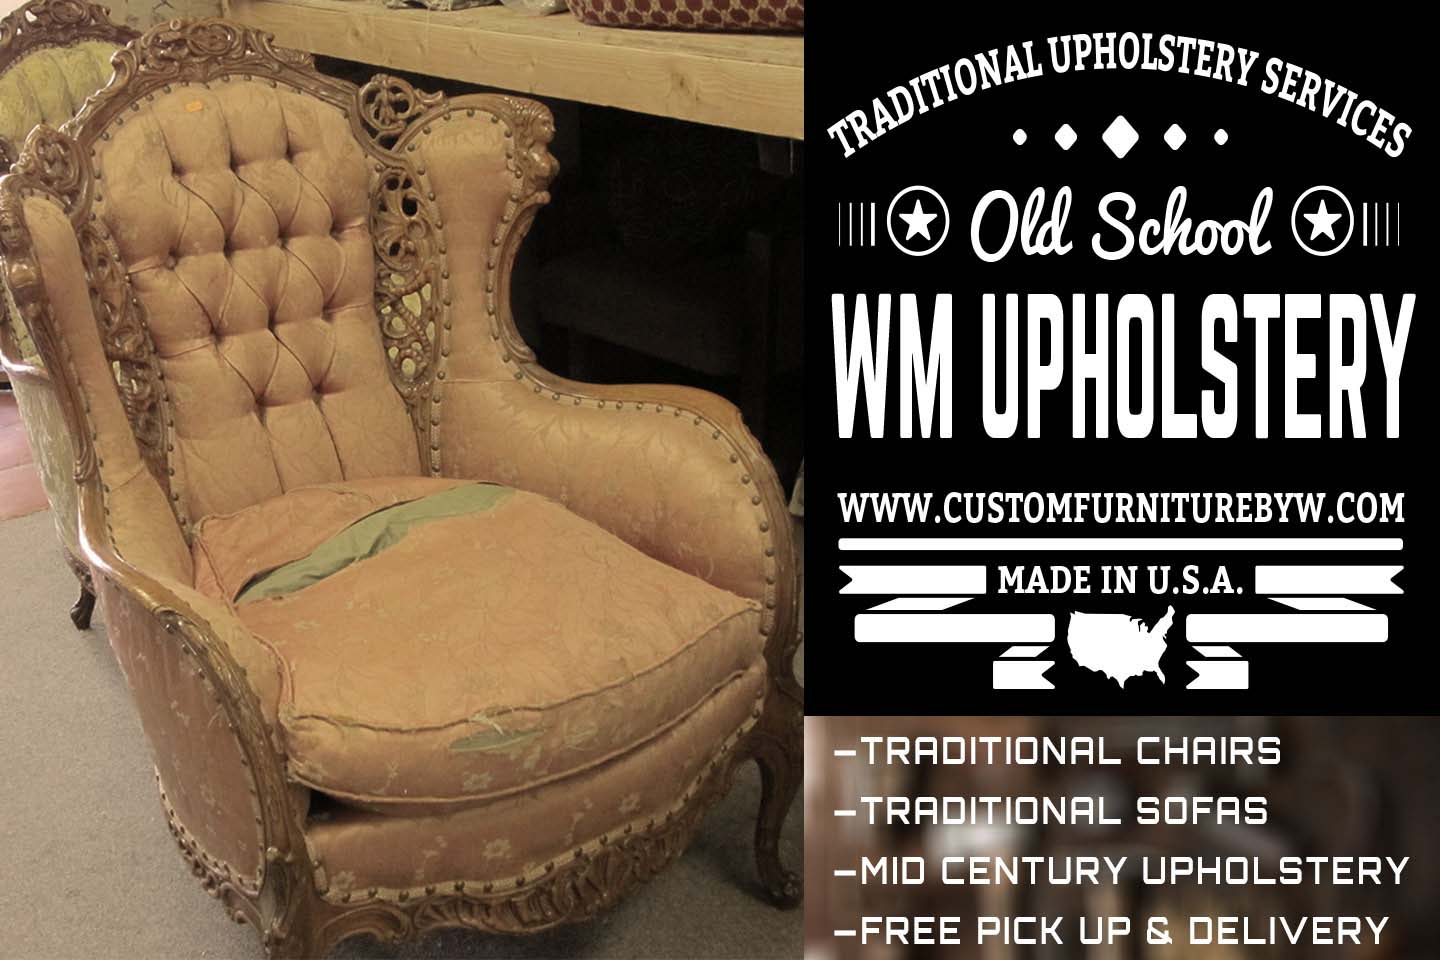 Mid Century sofa and chair upholstery and reupholstery in Van Nuys California